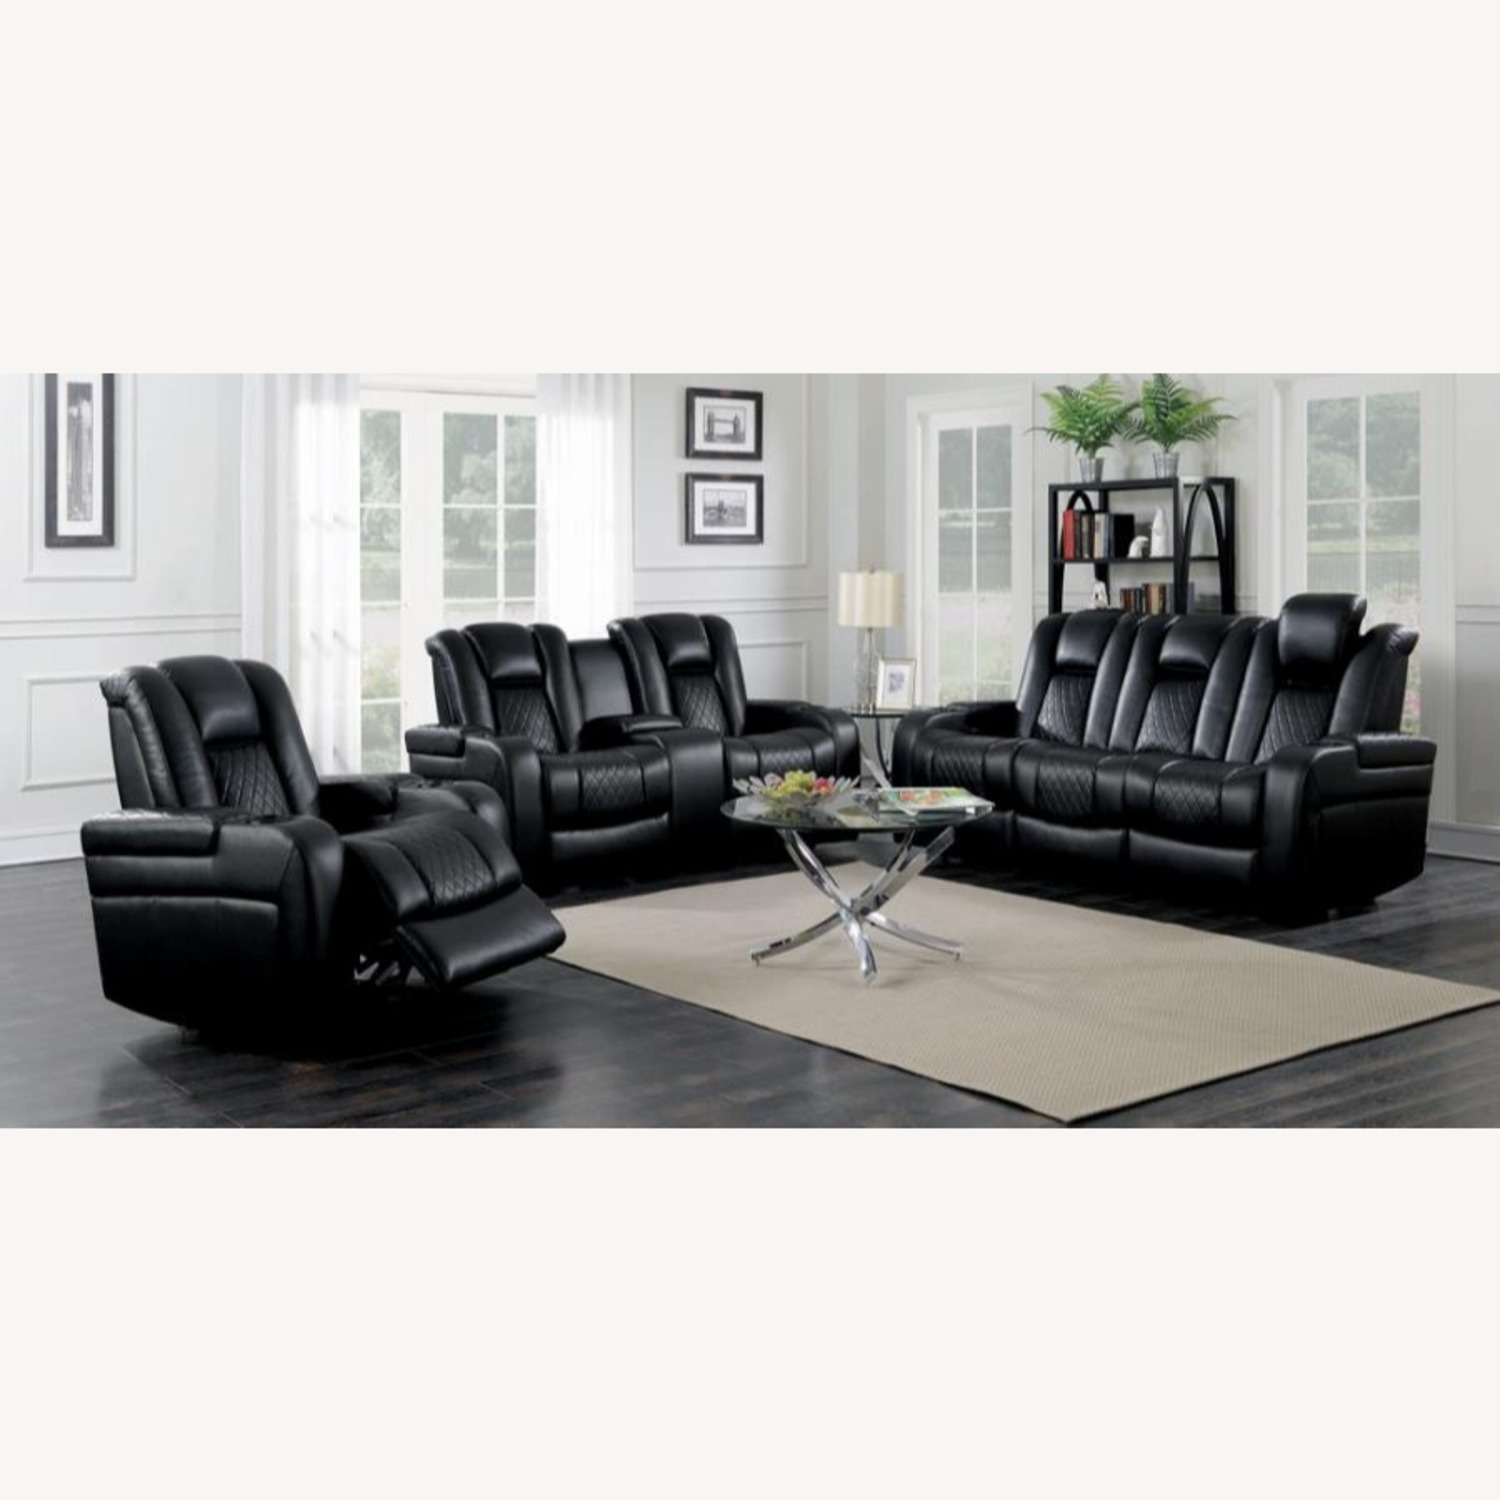 Power Sofa In Black Leather W/ LED Cupholder - image-9